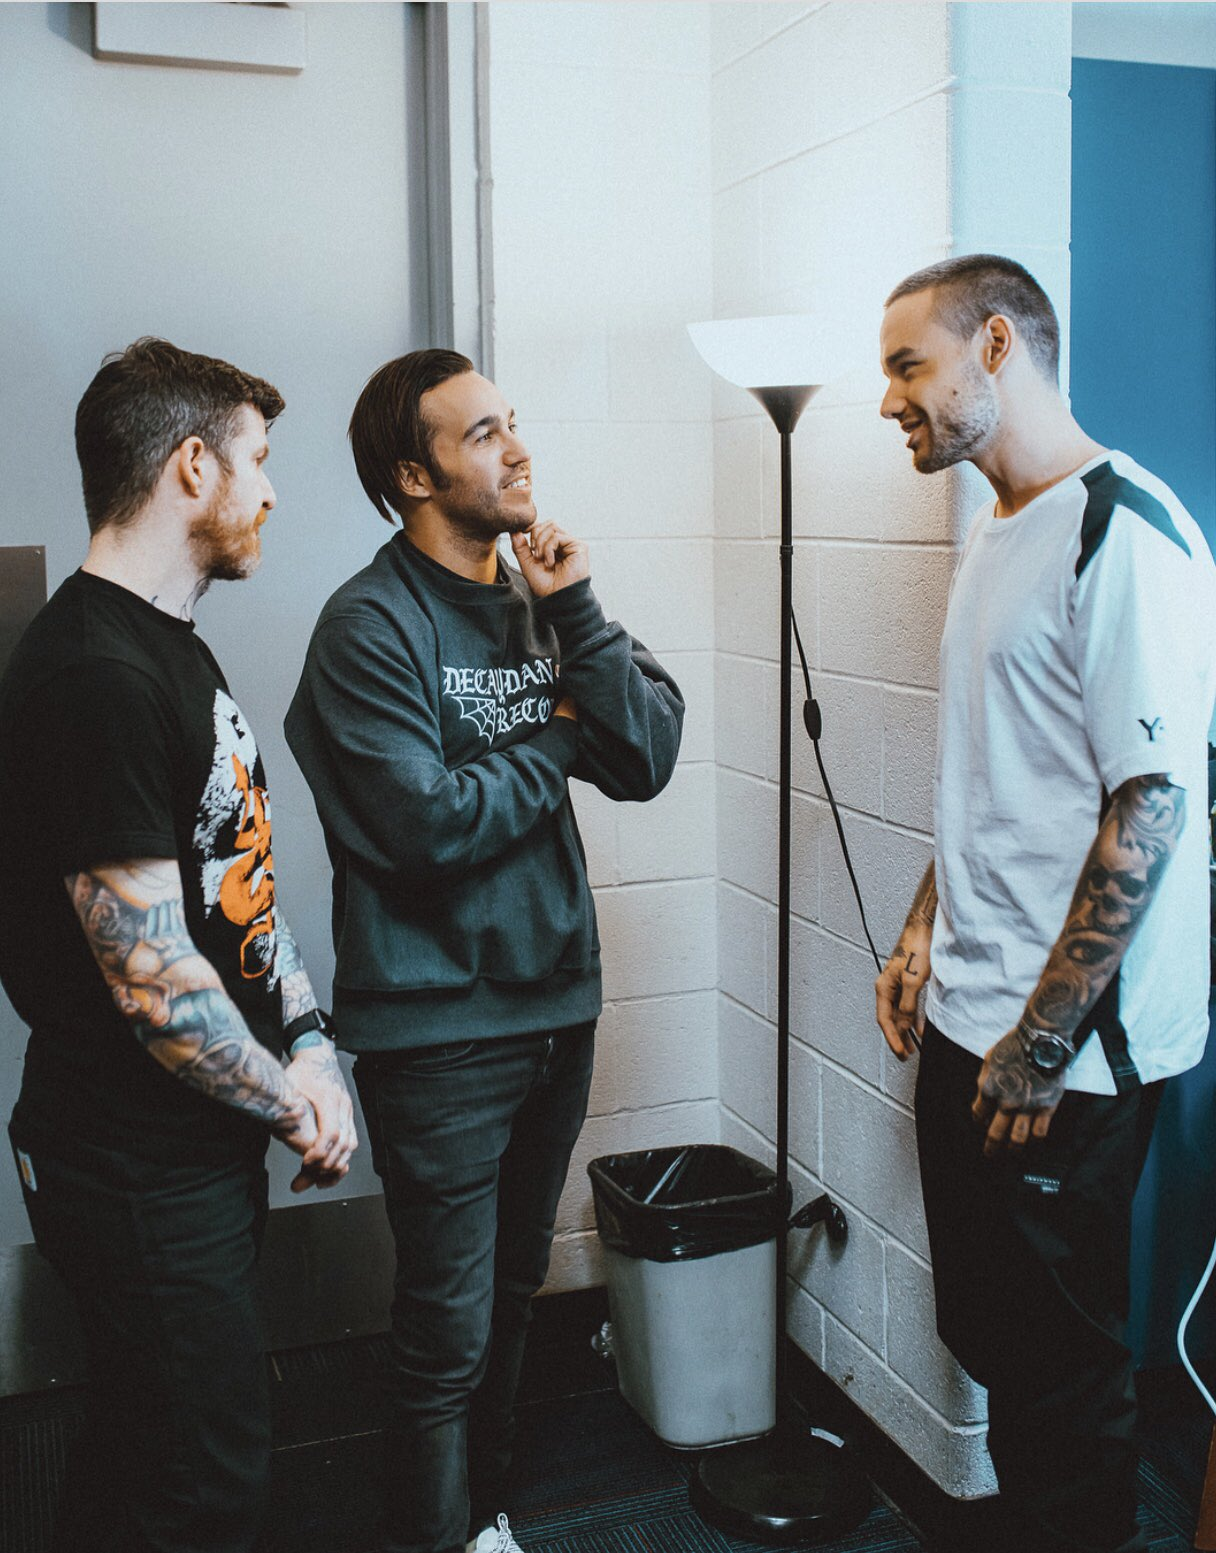 Good to see you boys again! @petewentz @hurleyxvx ���� https://t.co/oR4I15kQas